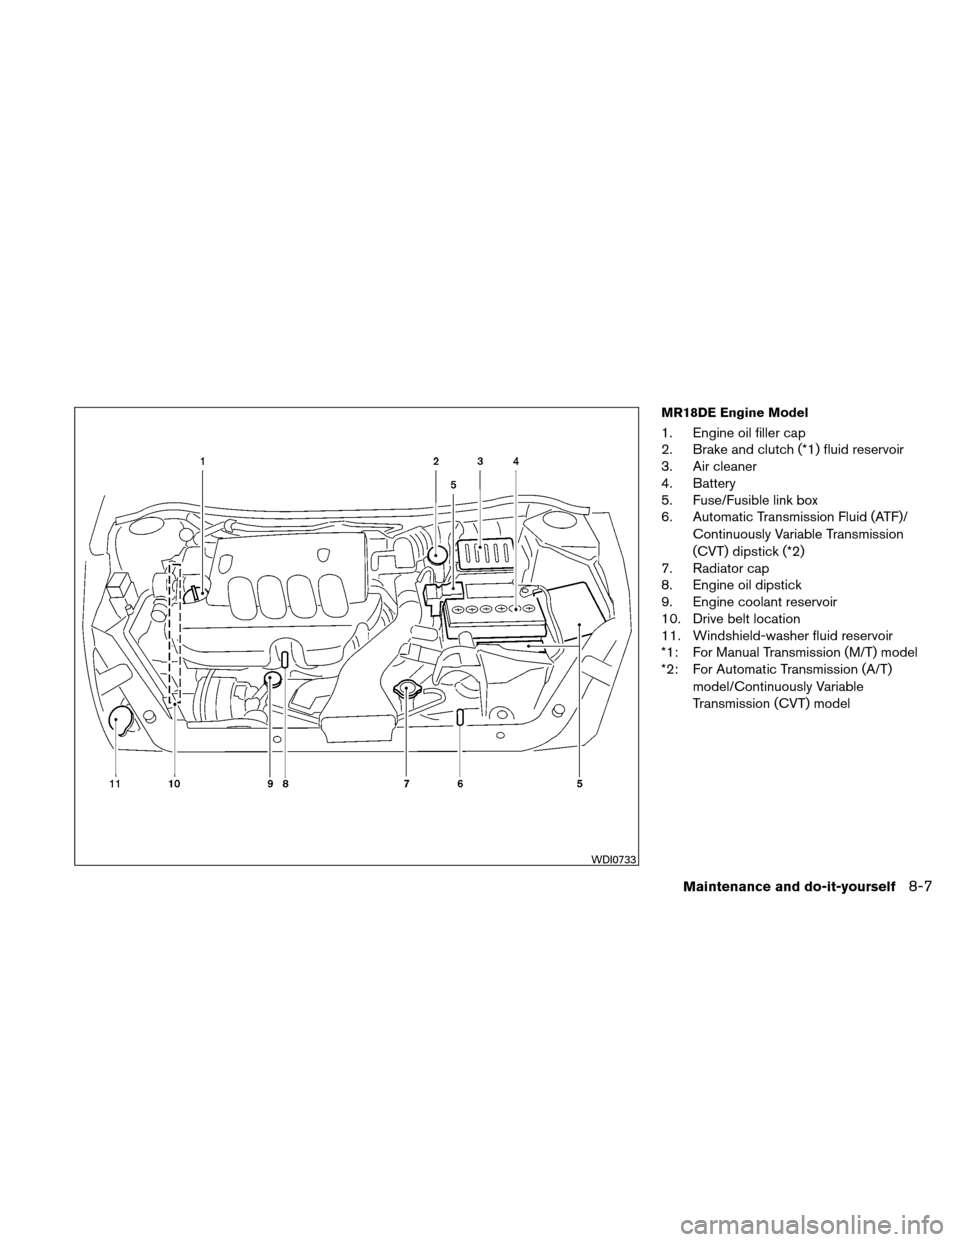 NISSAN VERSA HATCHBACK 2011 1.G Owners Manual, Page 280